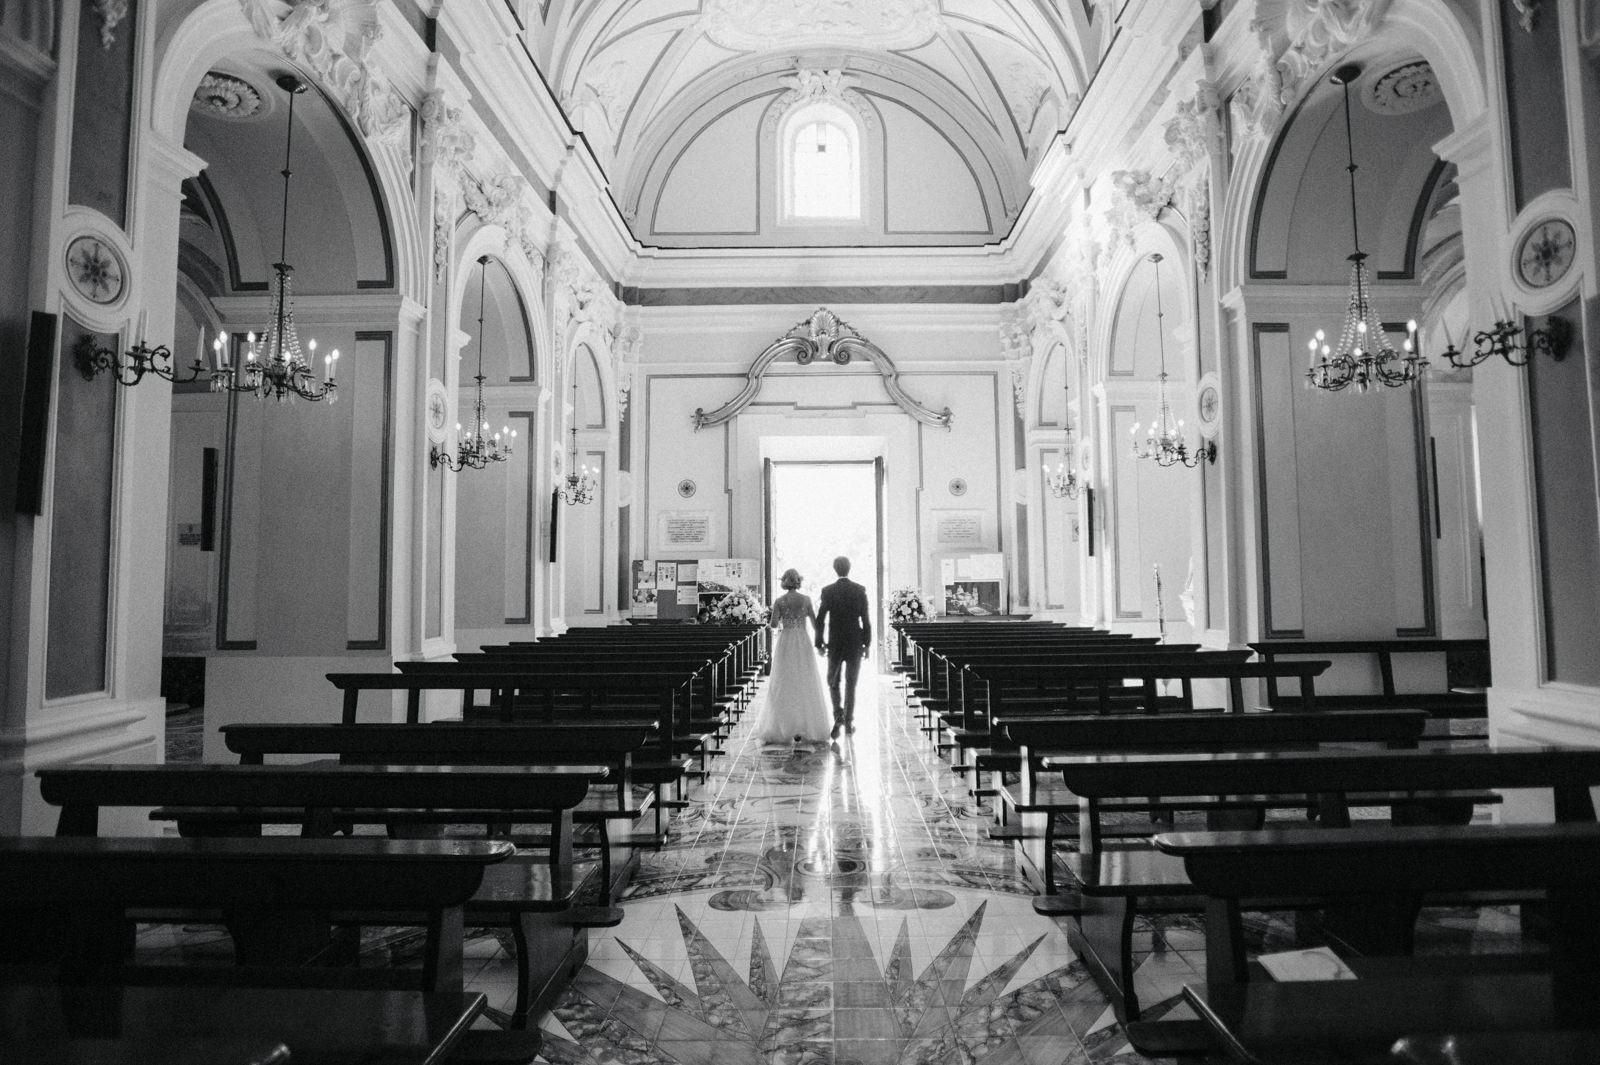 the bride and the groom walk together inside the empty church